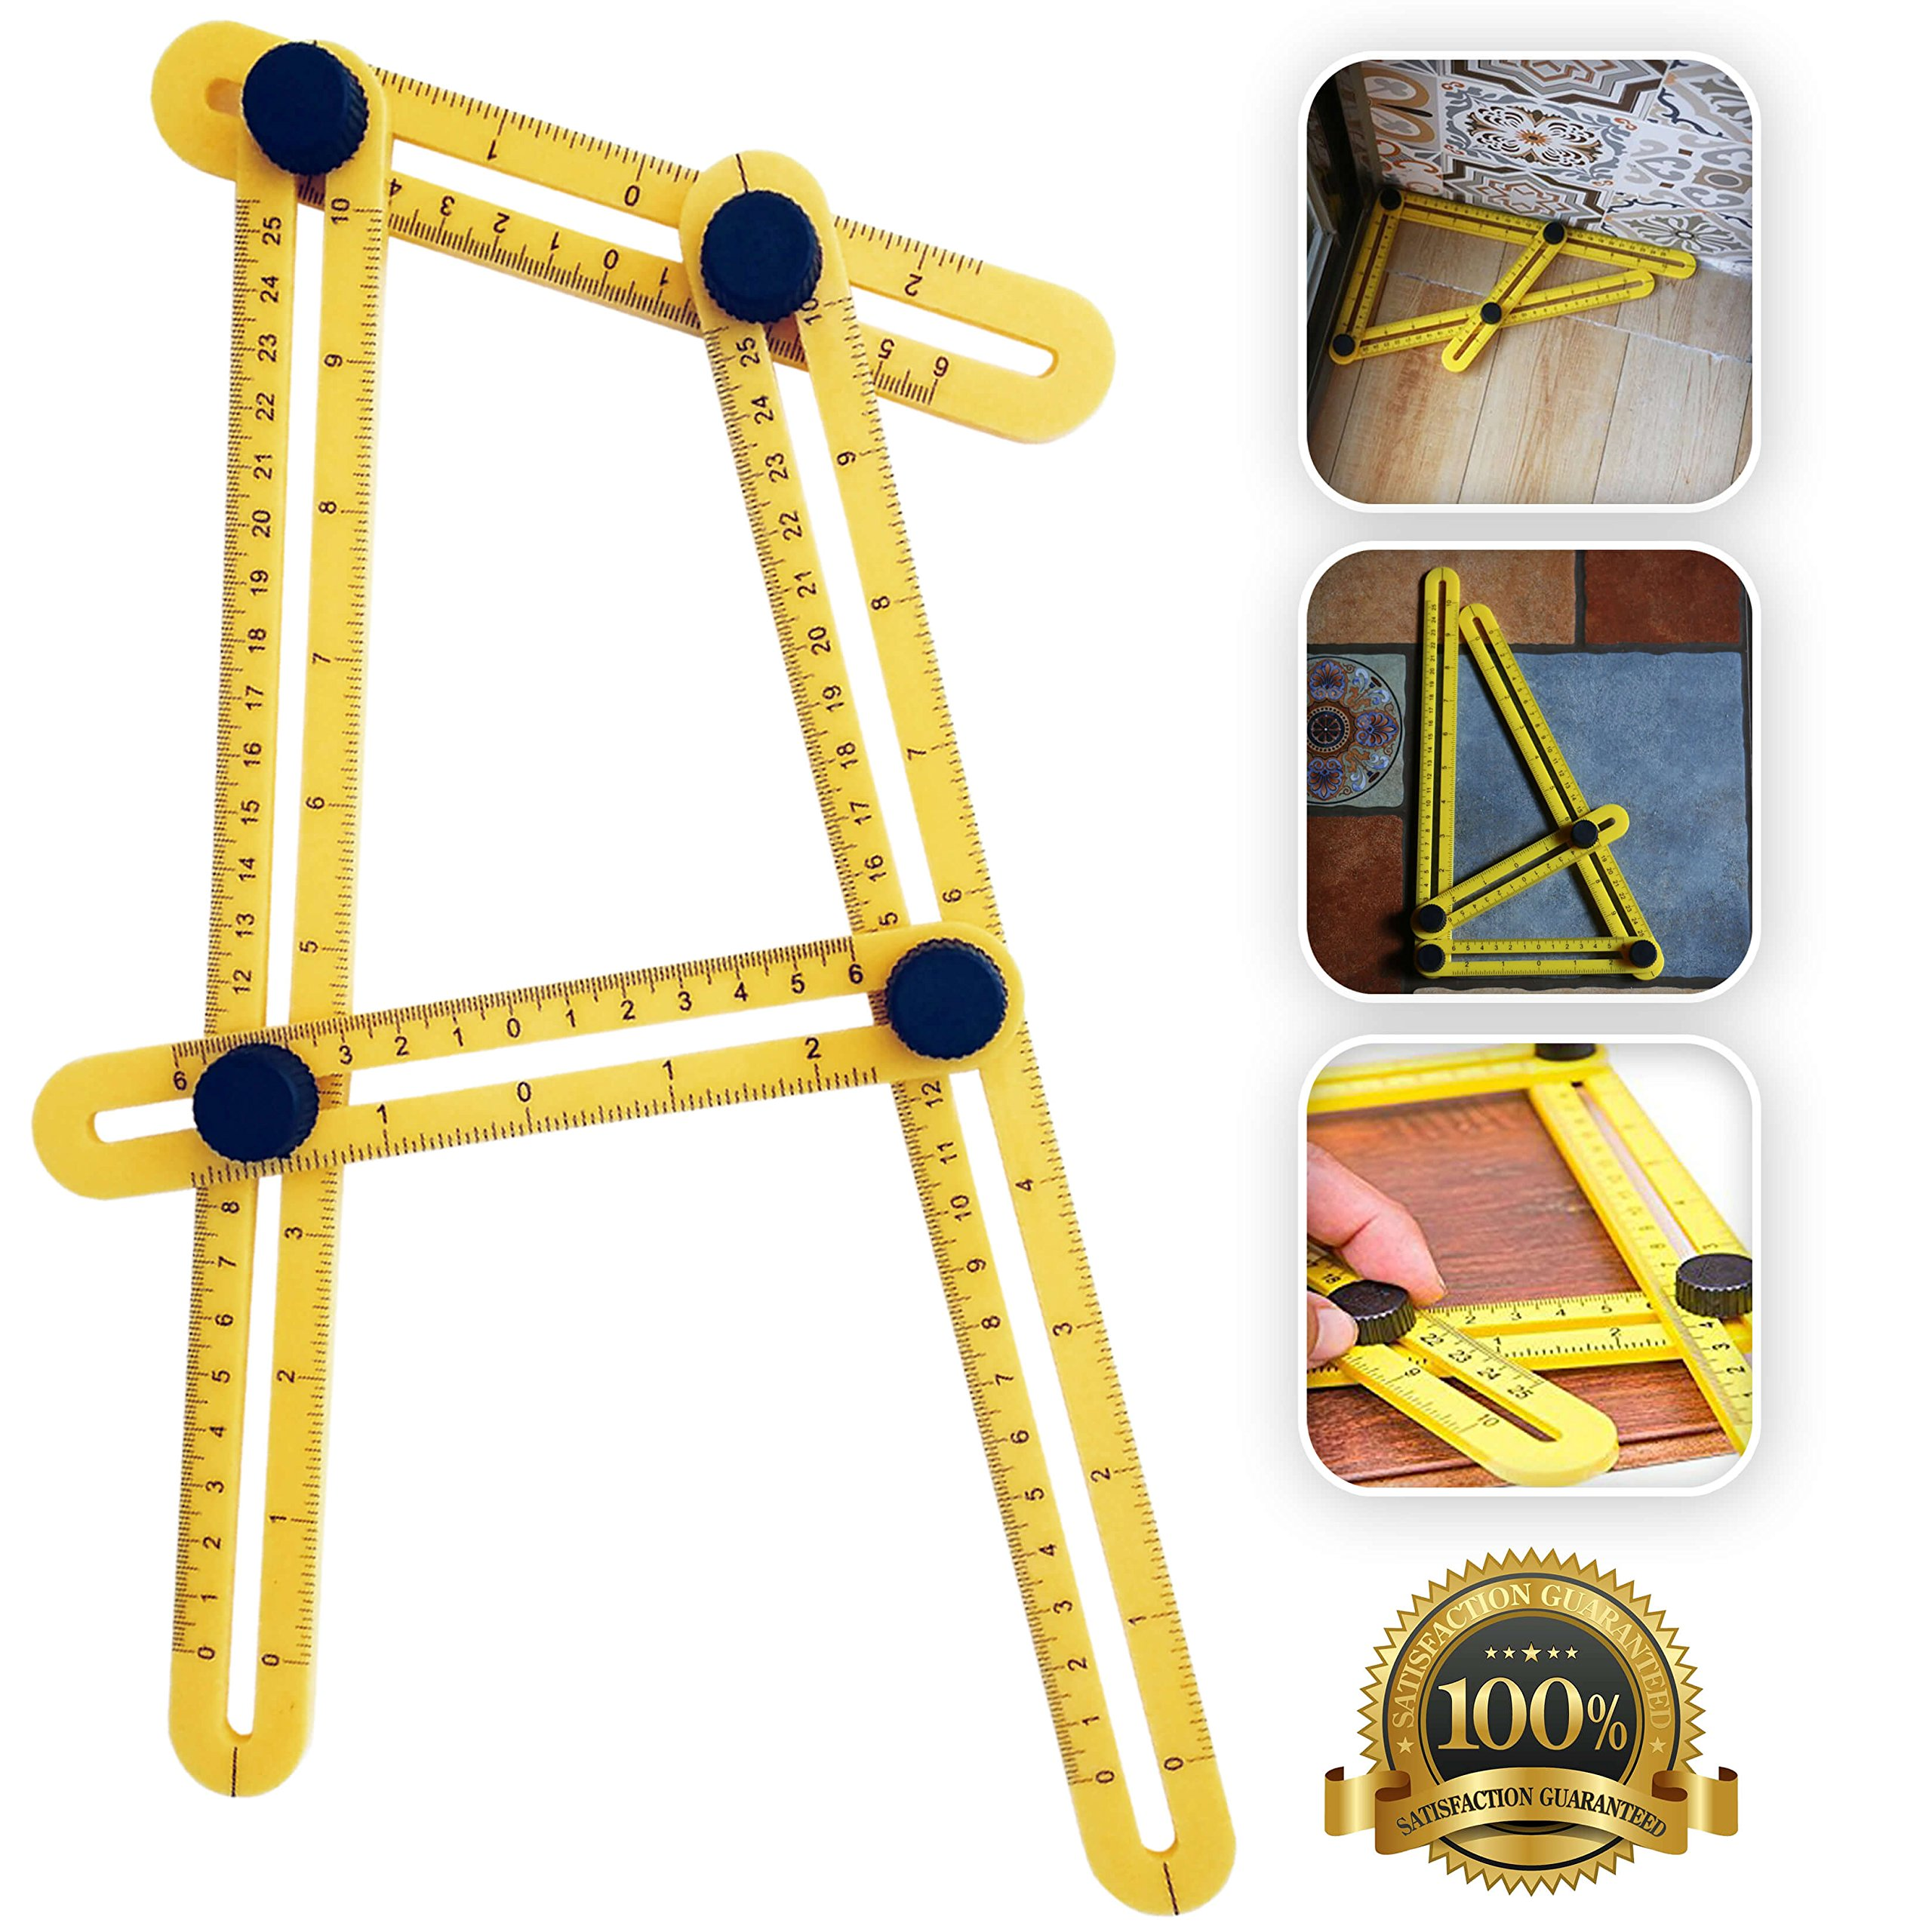 Angle Tool by Saberline Easy MaxForm Multi Angle Measuring Template Ruler With Metal Knob And Durable Plastic